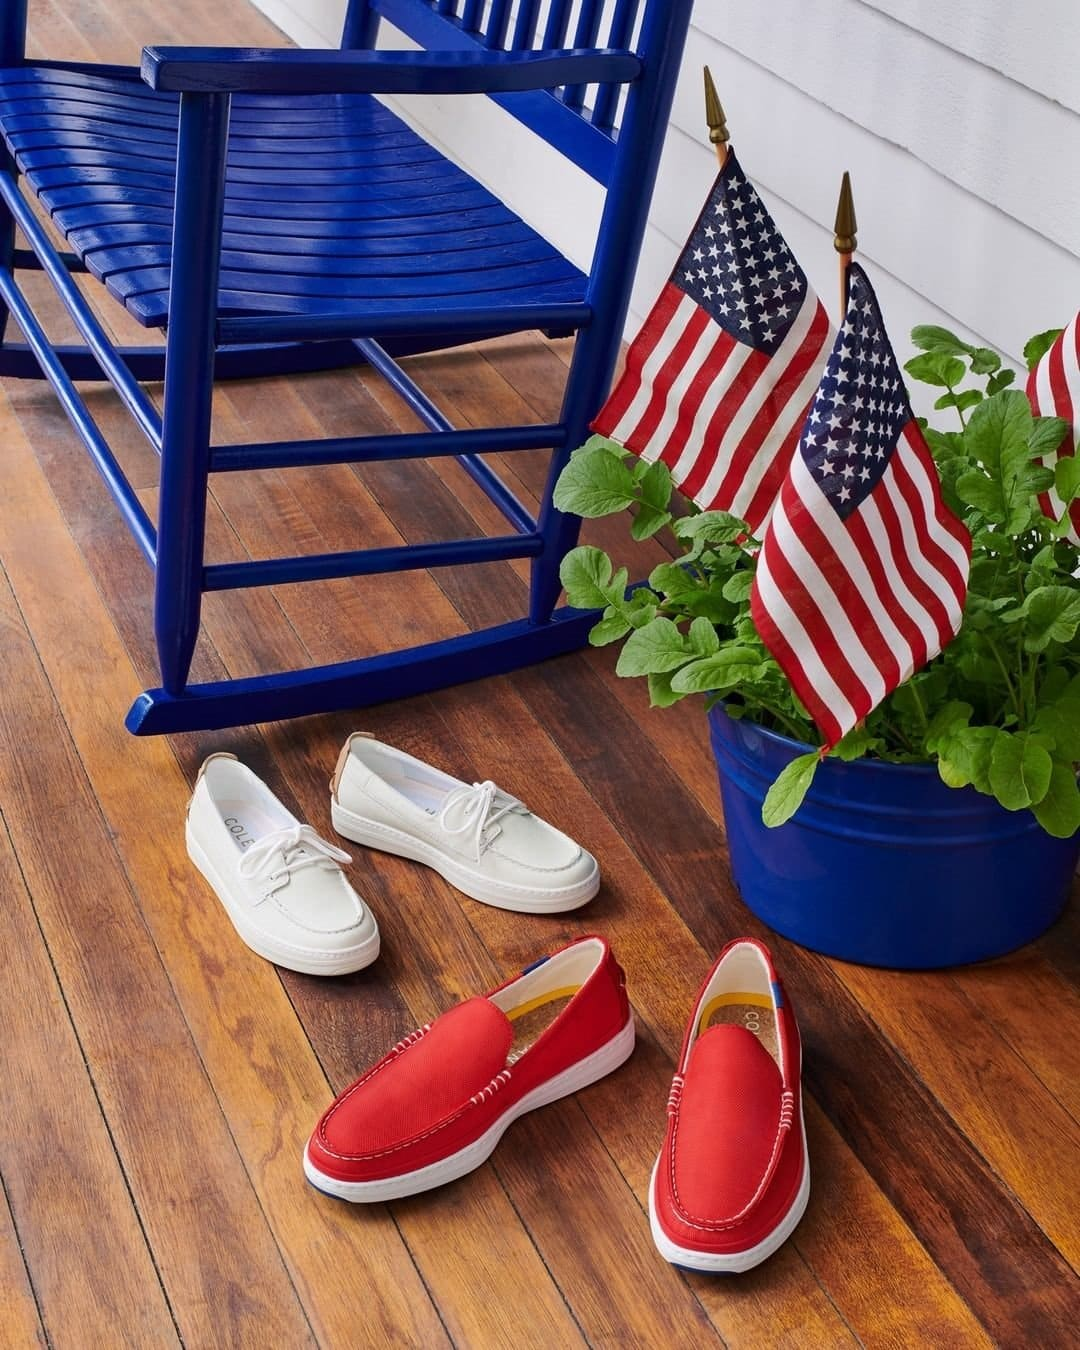 Cole Haan is an American brand of men's and women's footwear and accessories